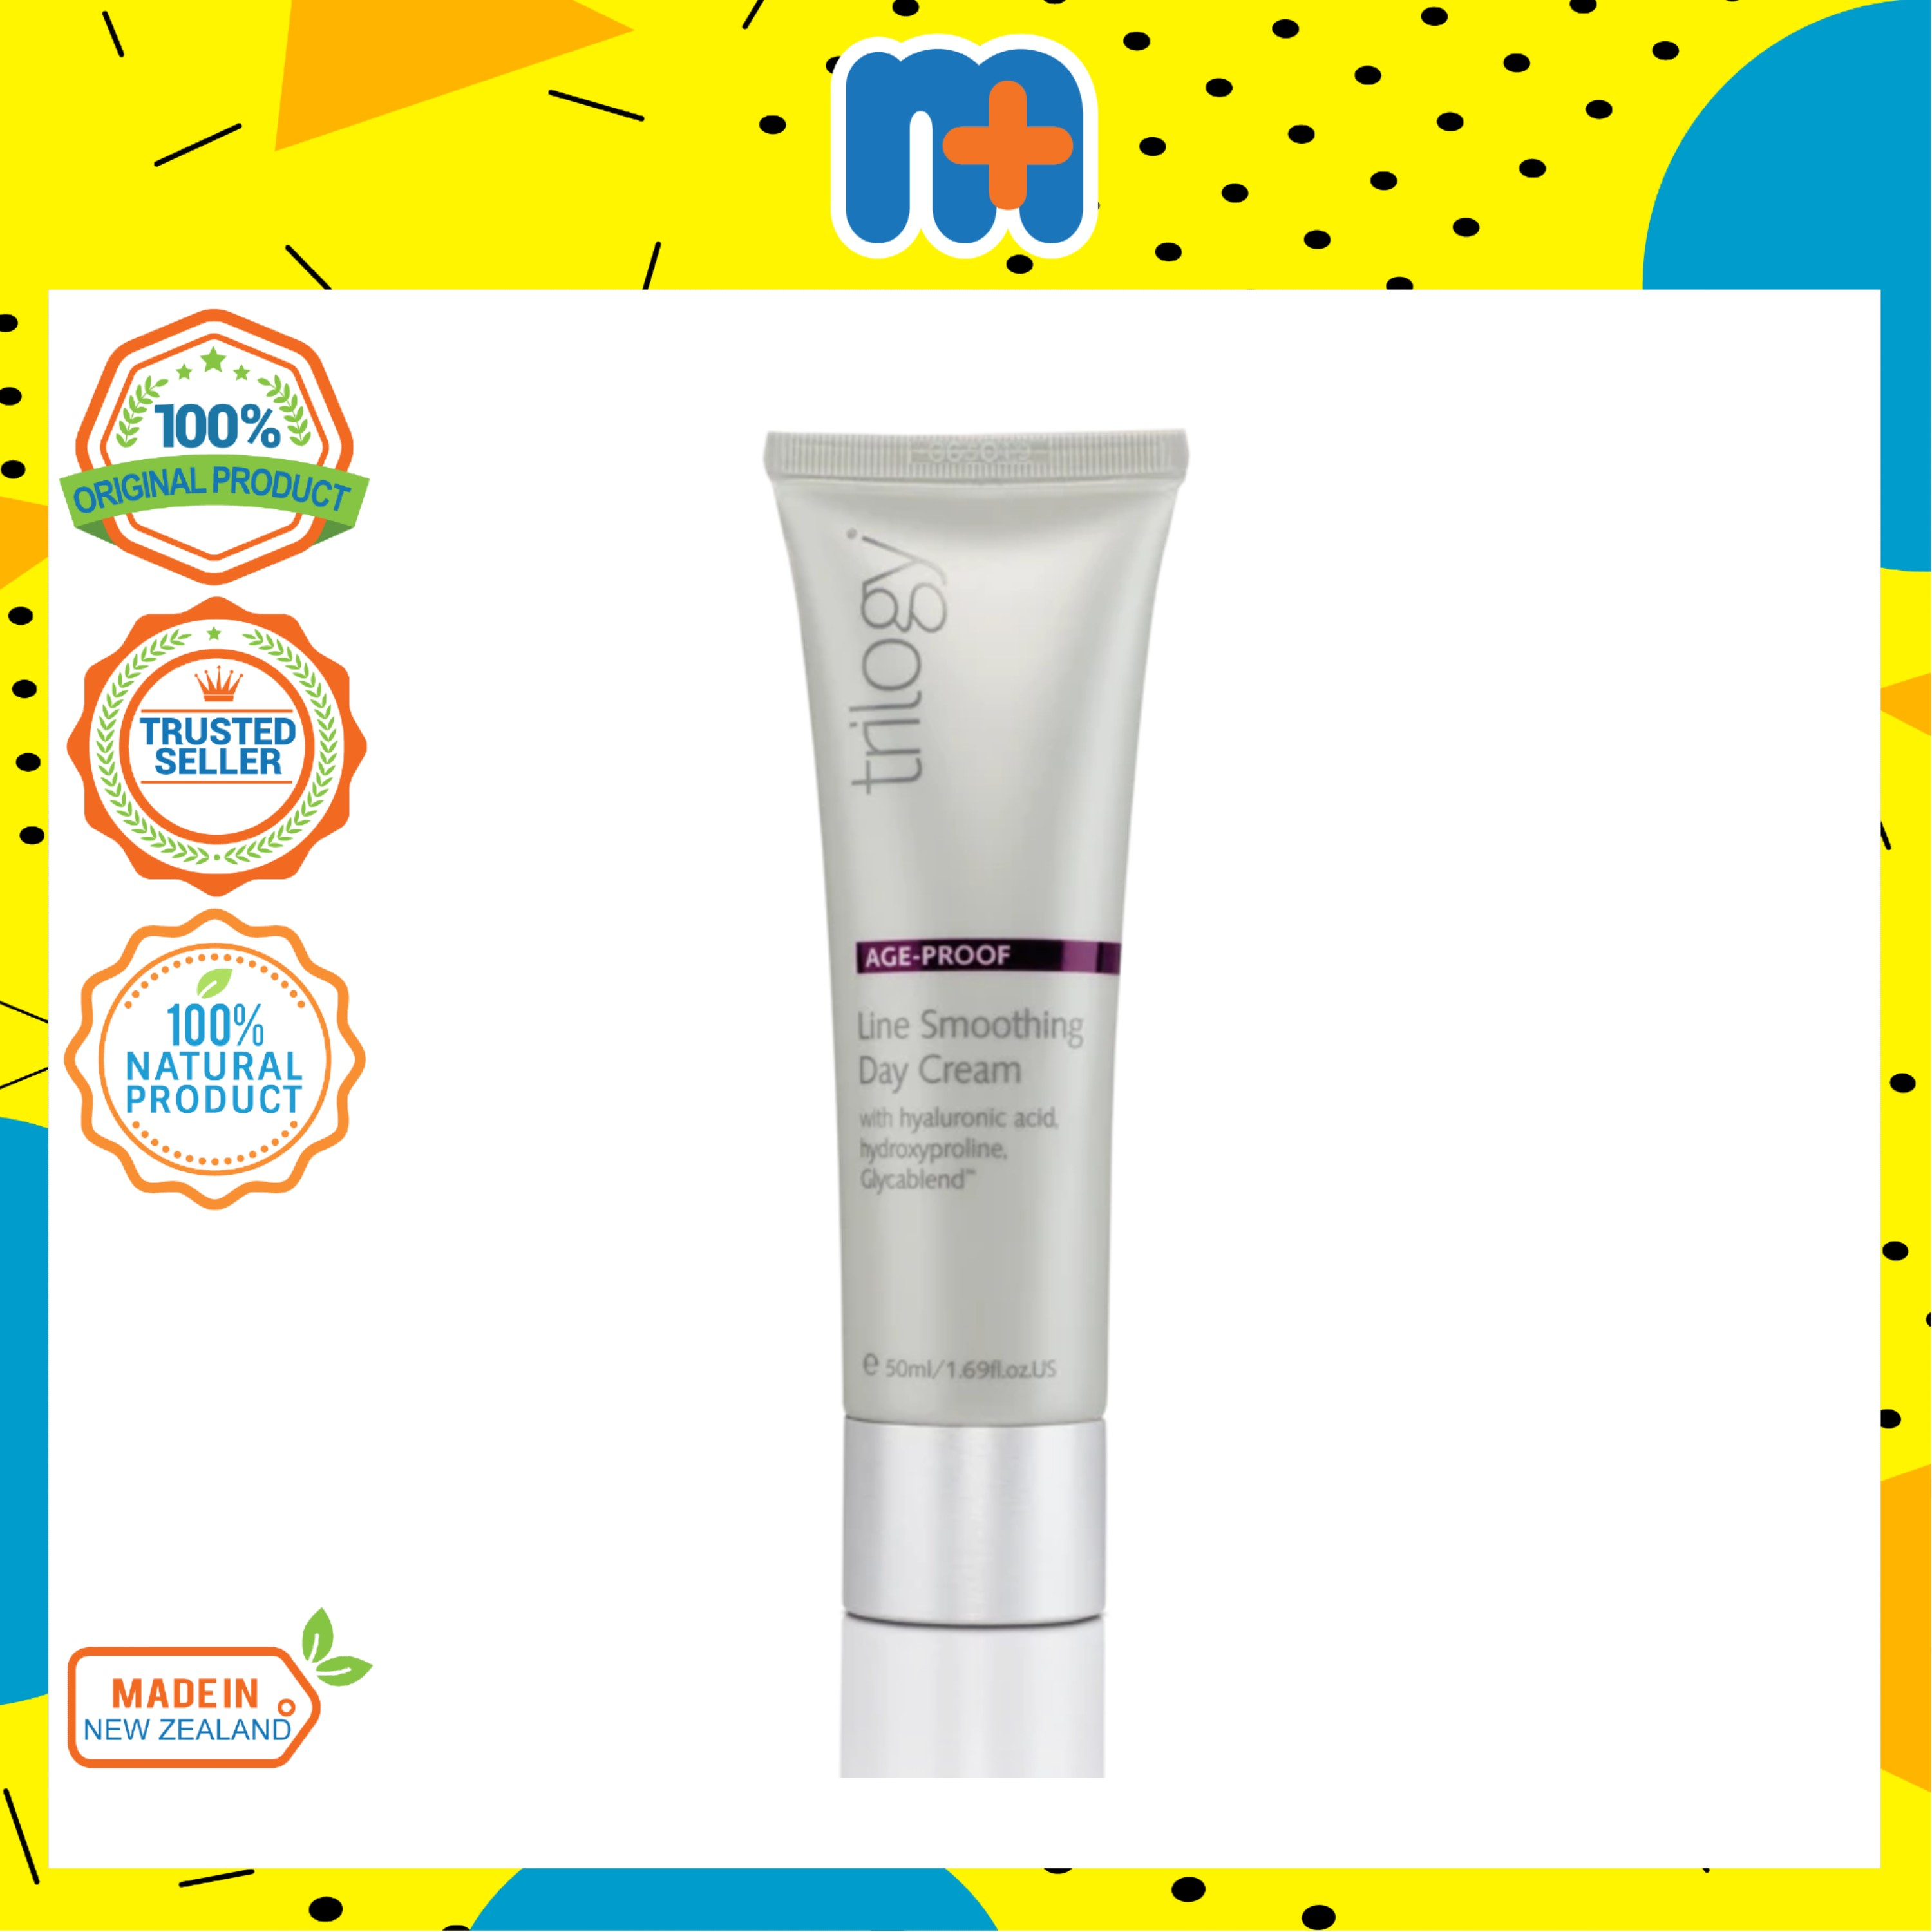 [MPLUS] TRILOGY Line Smoothing Day Cream 50ml